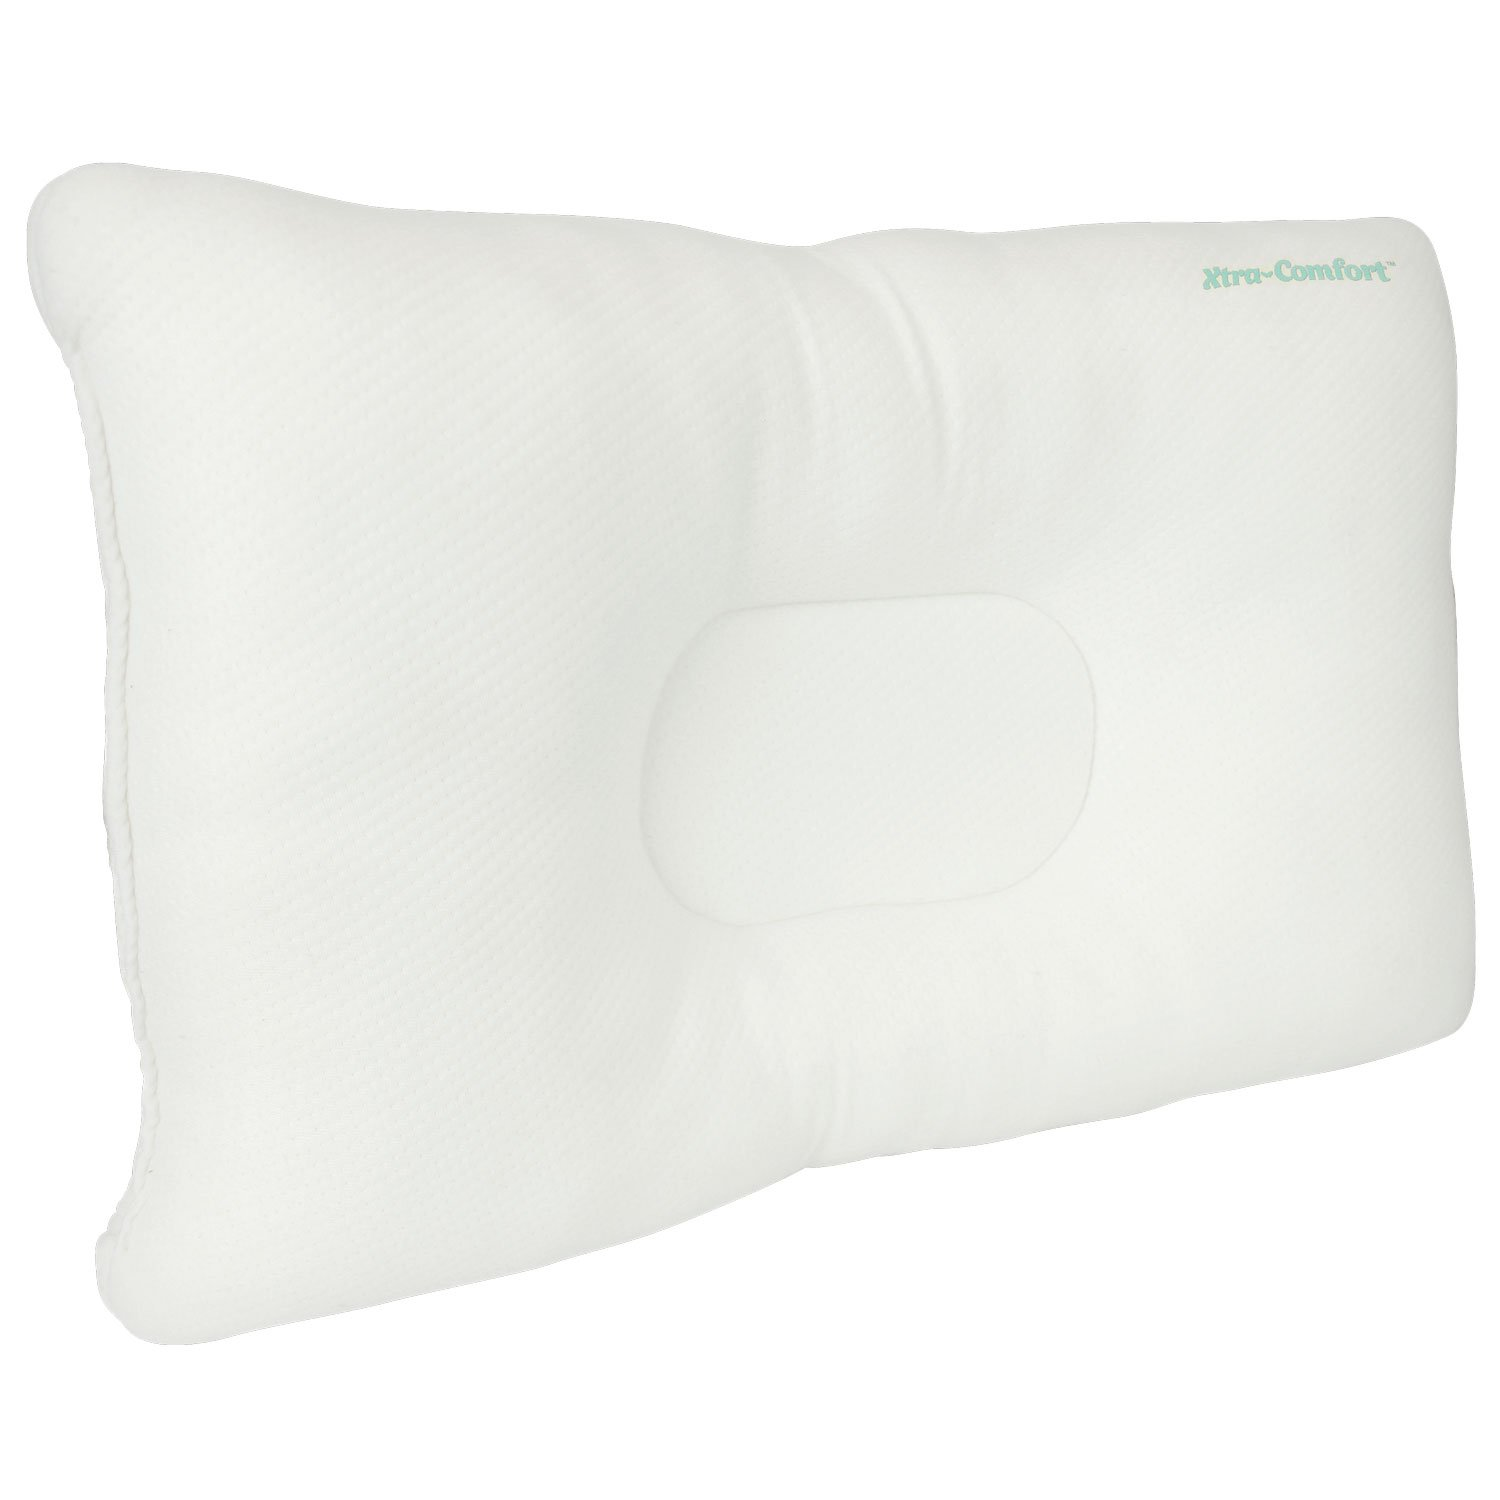 by pain support sleepers pillow and neck dp comfort com therapeutic relief orthopedic for chiropractic comfortable xtra side back amazon cervical